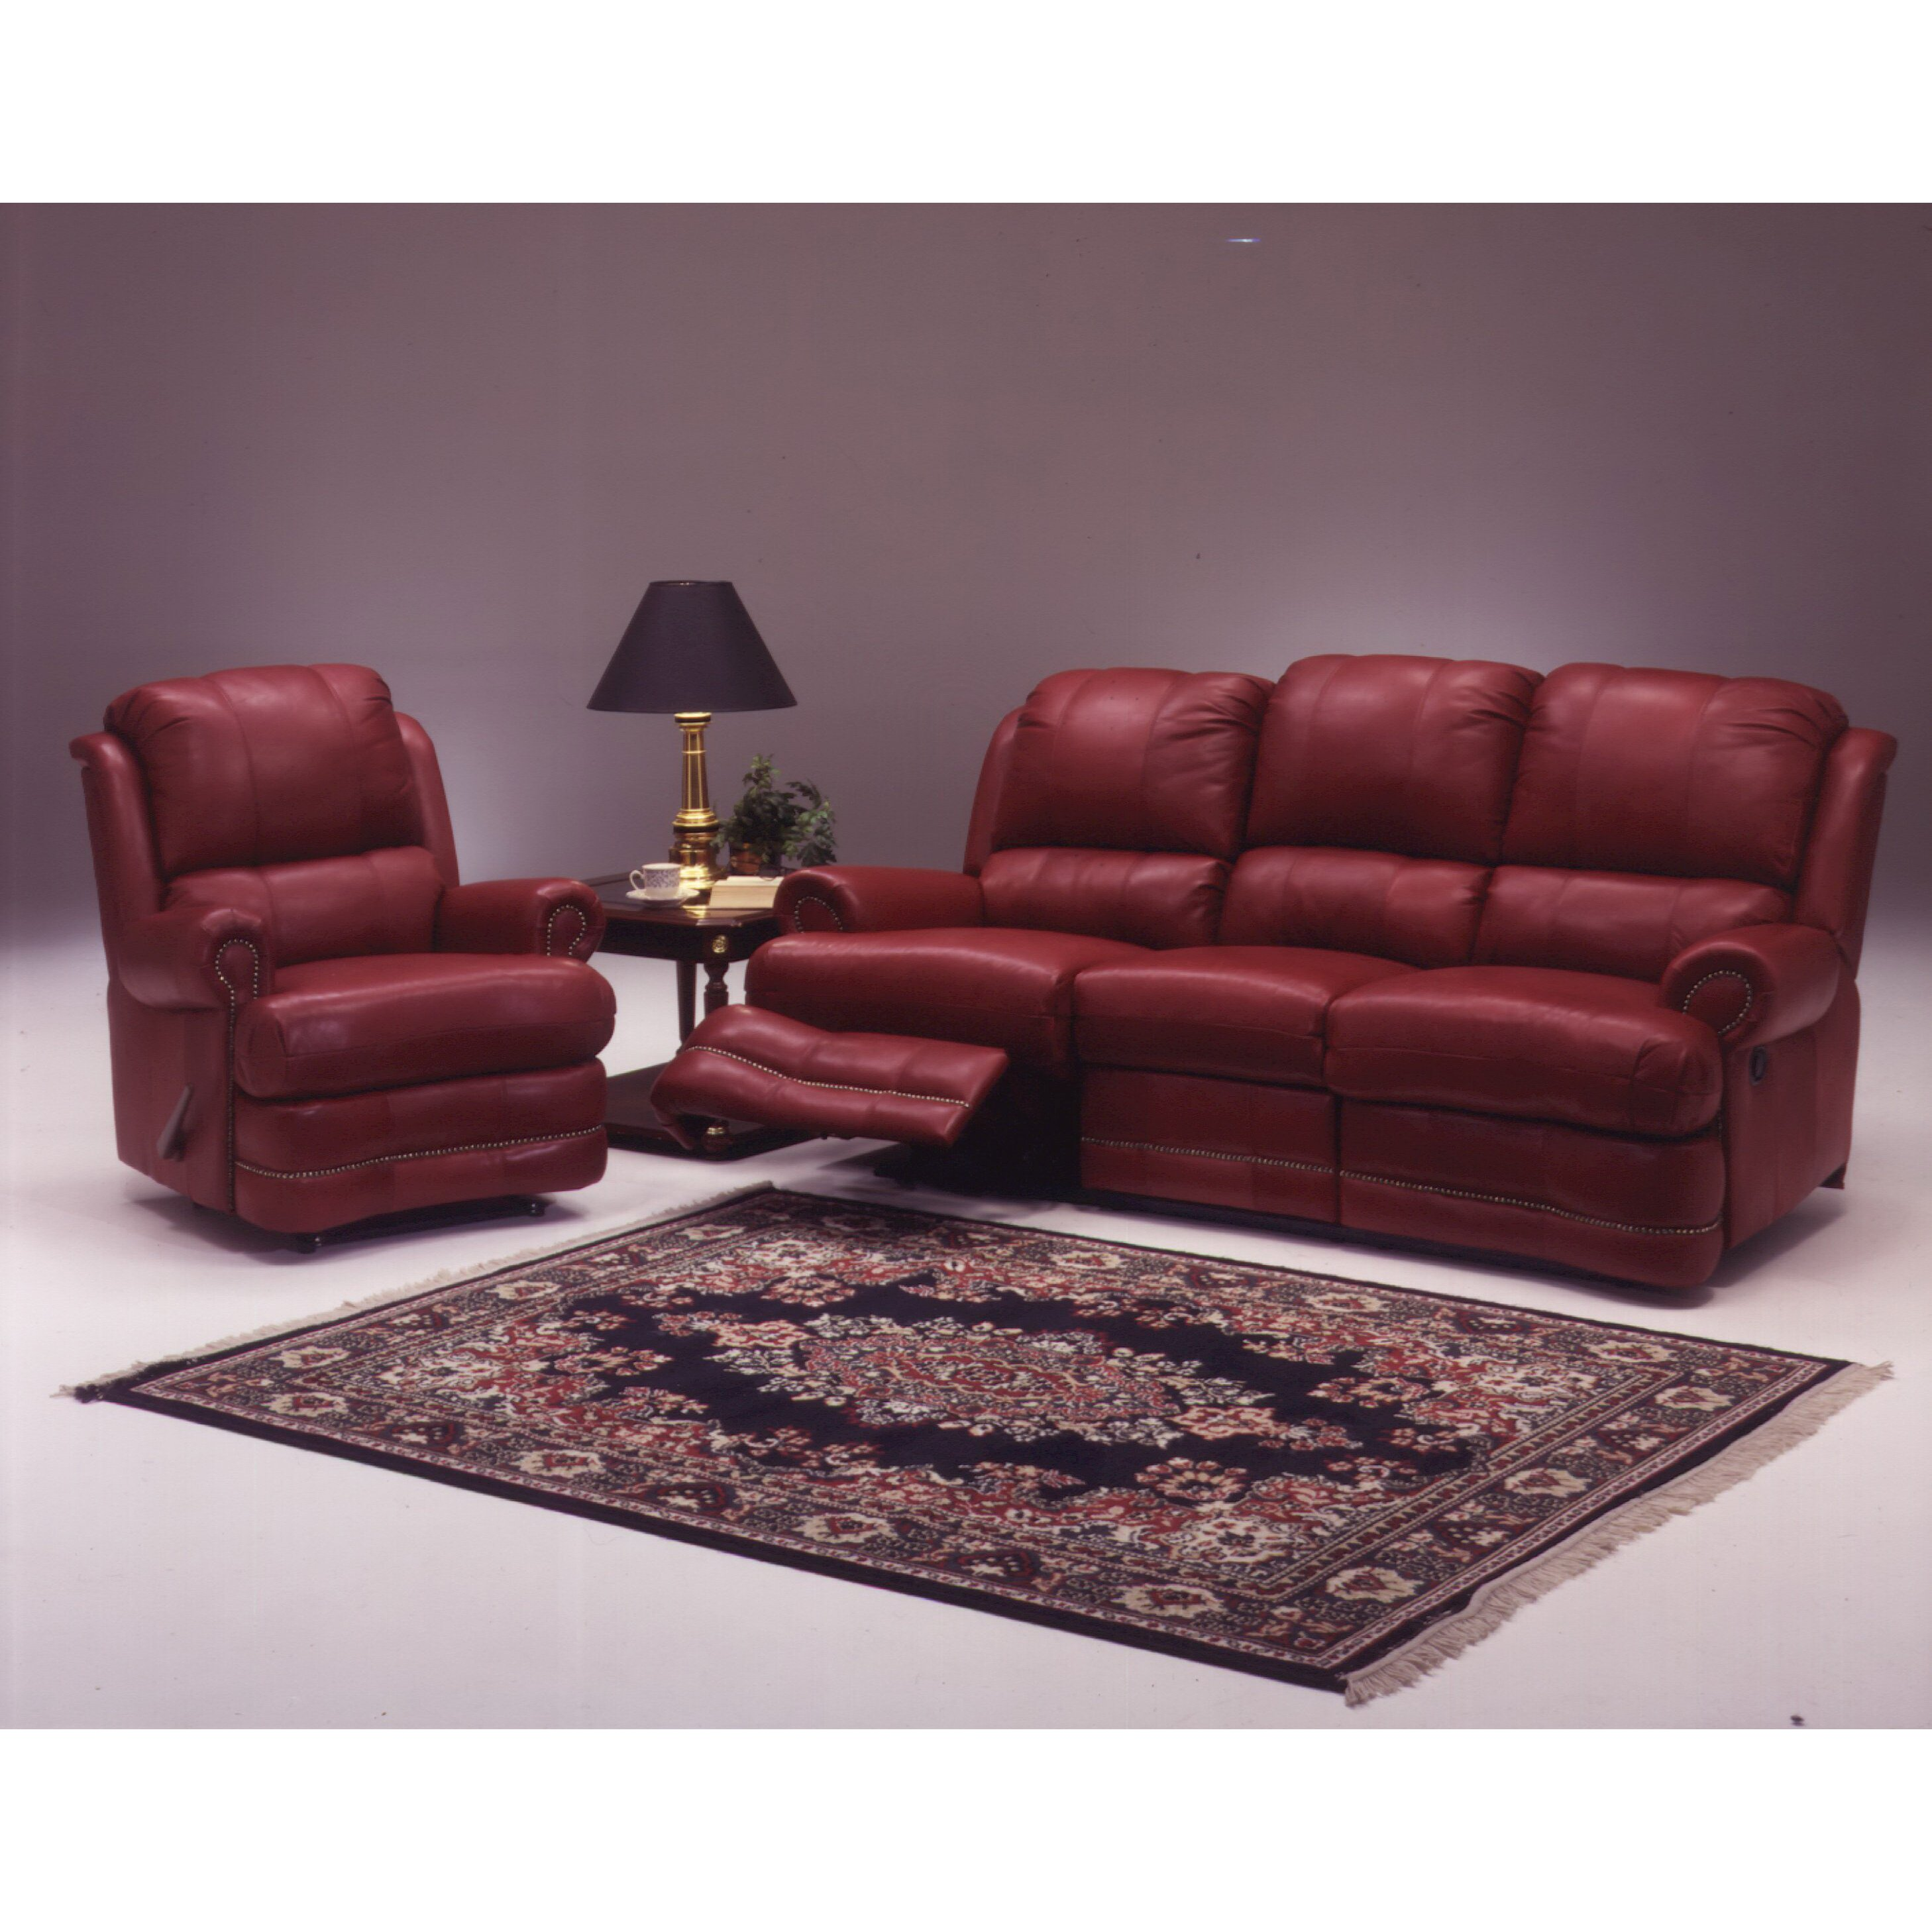 Leather Living Room Sets For Omnia Leather Morgan Reclining Leather Living Room Set Reviews